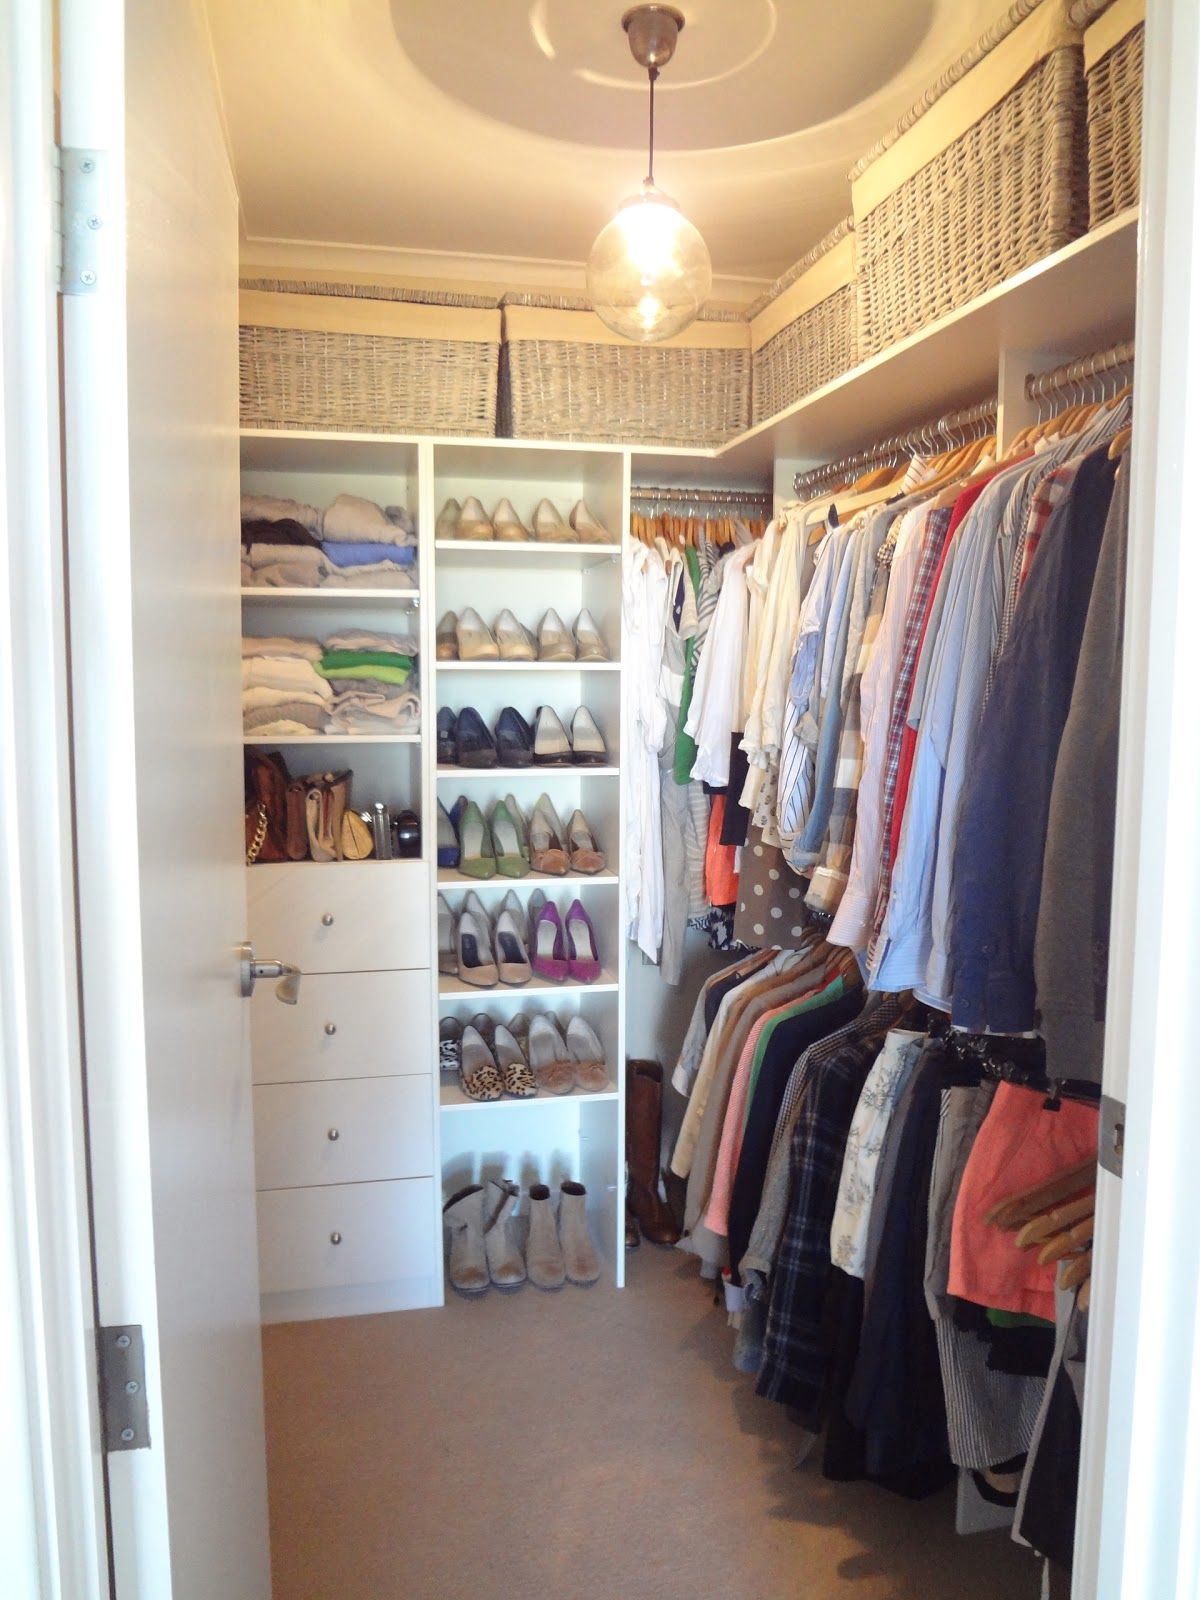 20 Incredible Small Walk In Closet Ideas Makeovers Closet Layout Small Master Closet Closet Remodel